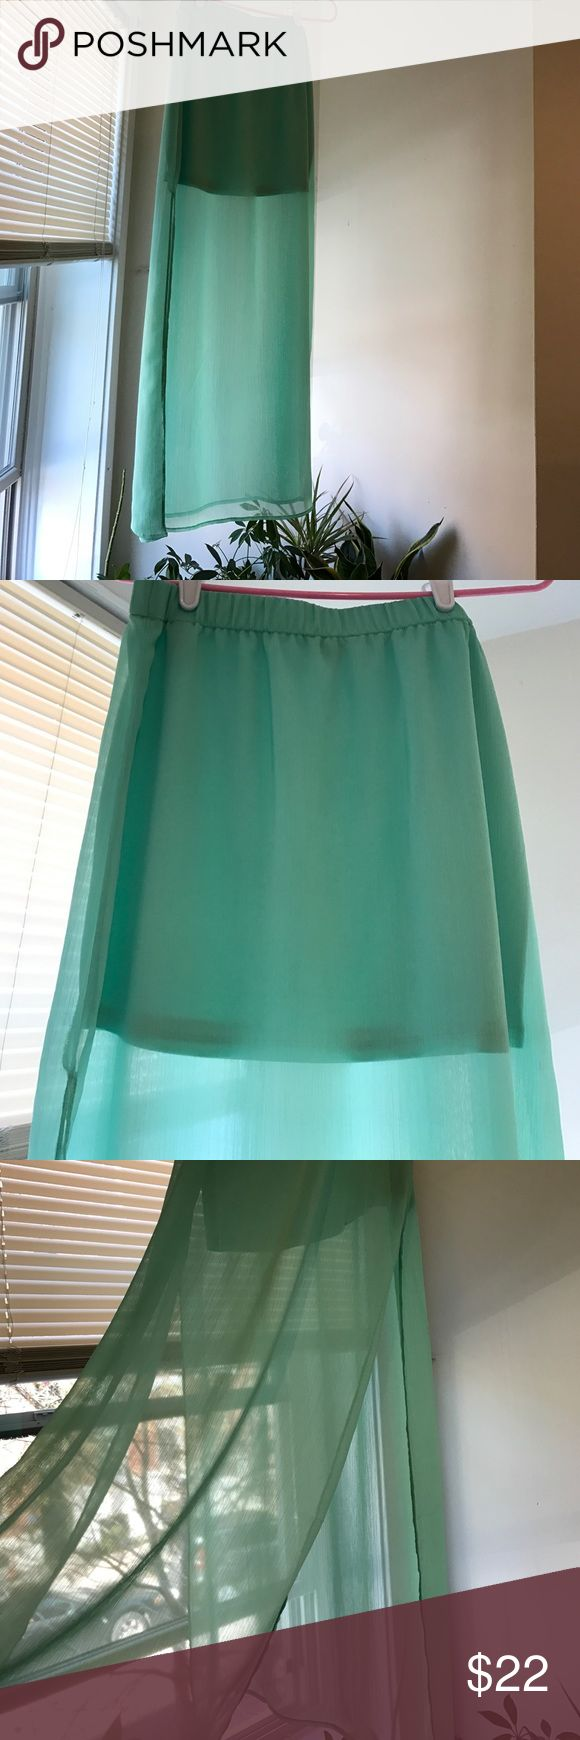 Sheer Maxi Skirt Express Maxi Skirt. Mint/Sea foam color. Sheer overlay with slits on both sides. Pairs nicely with a solid white or black tank top. Express Skirts Maxi